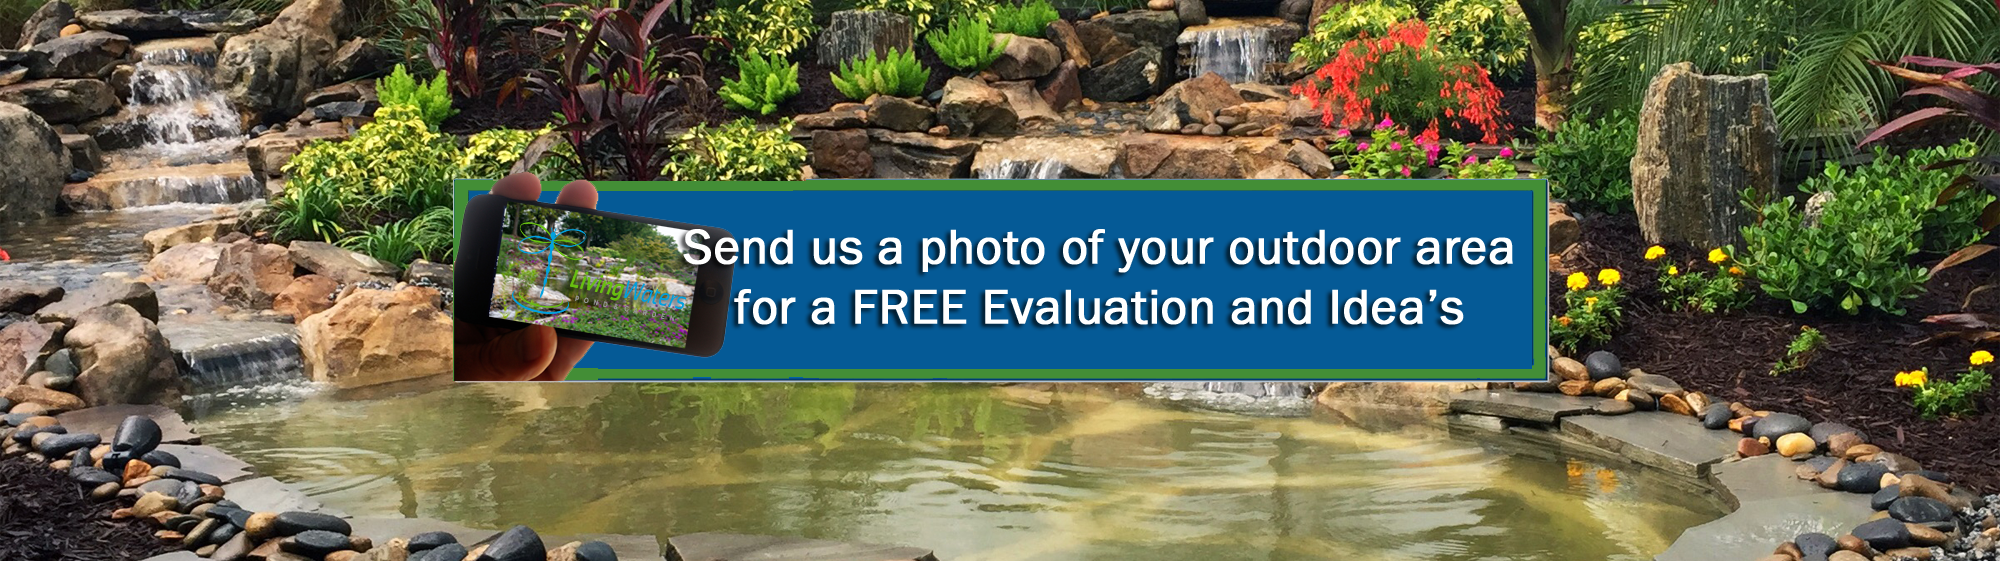 http://livingwaterfeatures.com/wp-content/uploads/2011/11/Free-Pond-Eval-2000x561.png